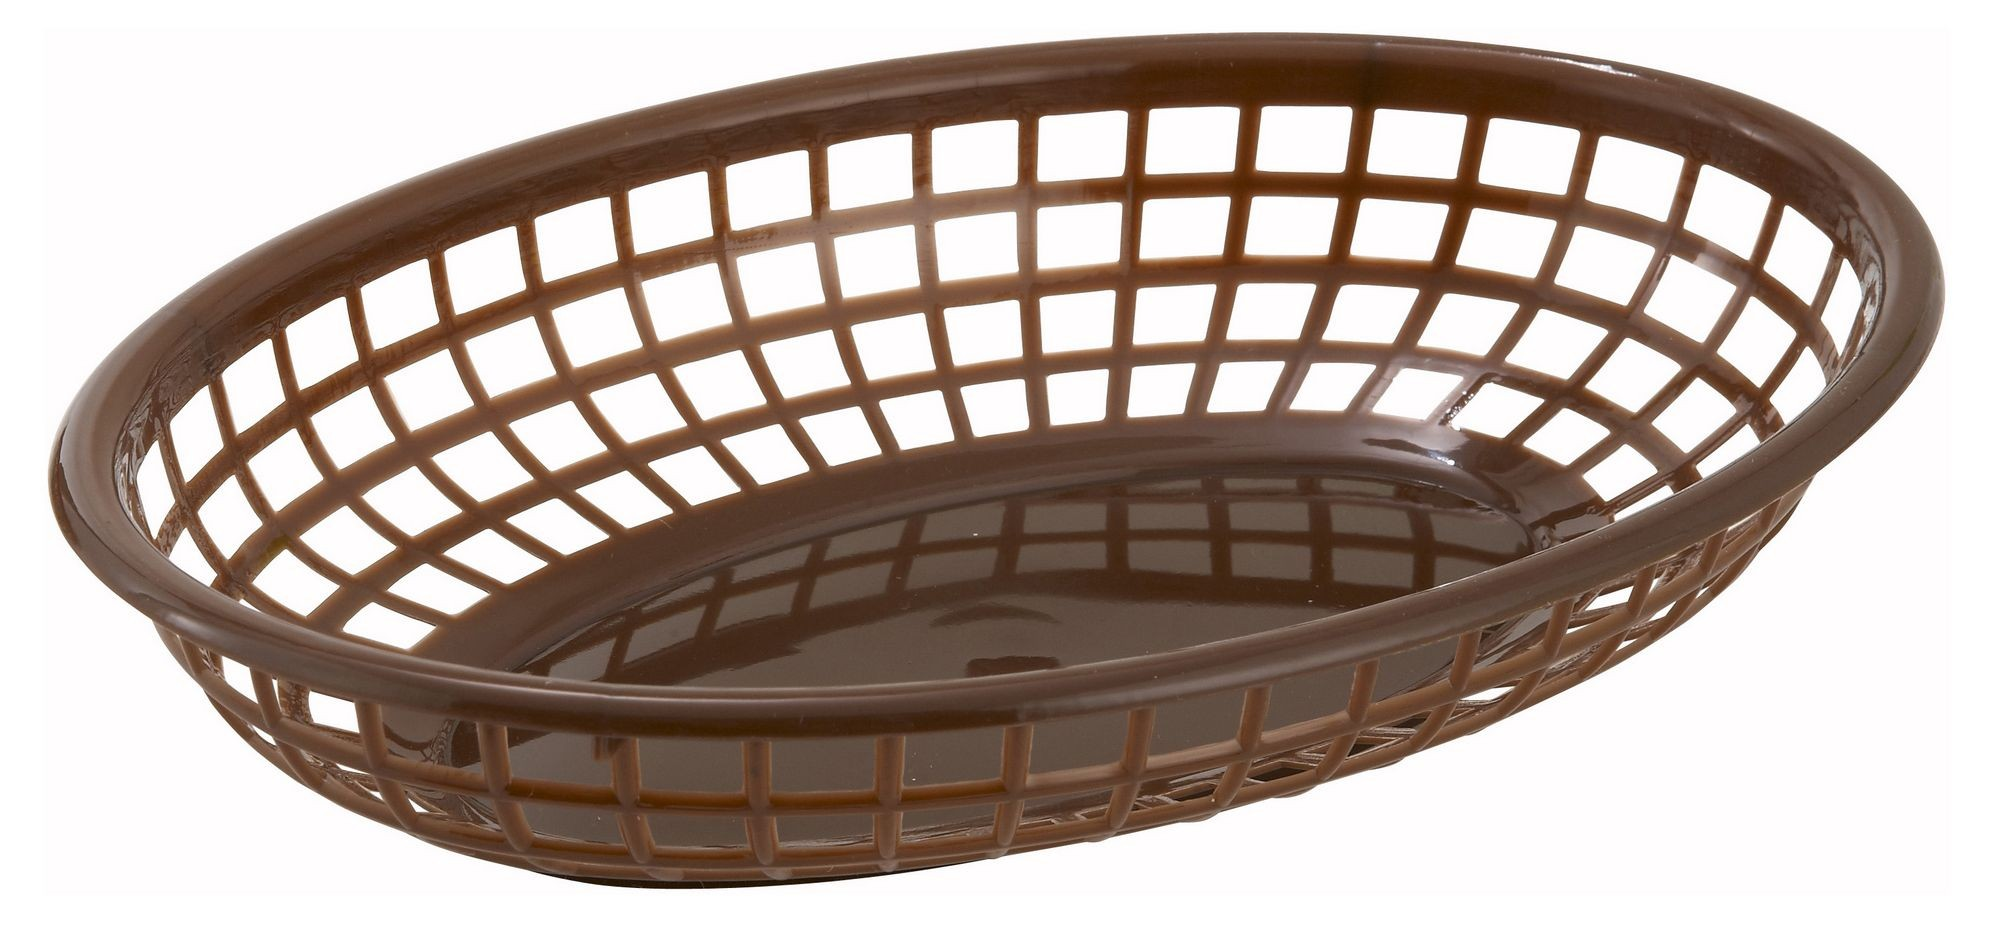 Brown Oval Plastic Fast Food Basket - 9-1/2